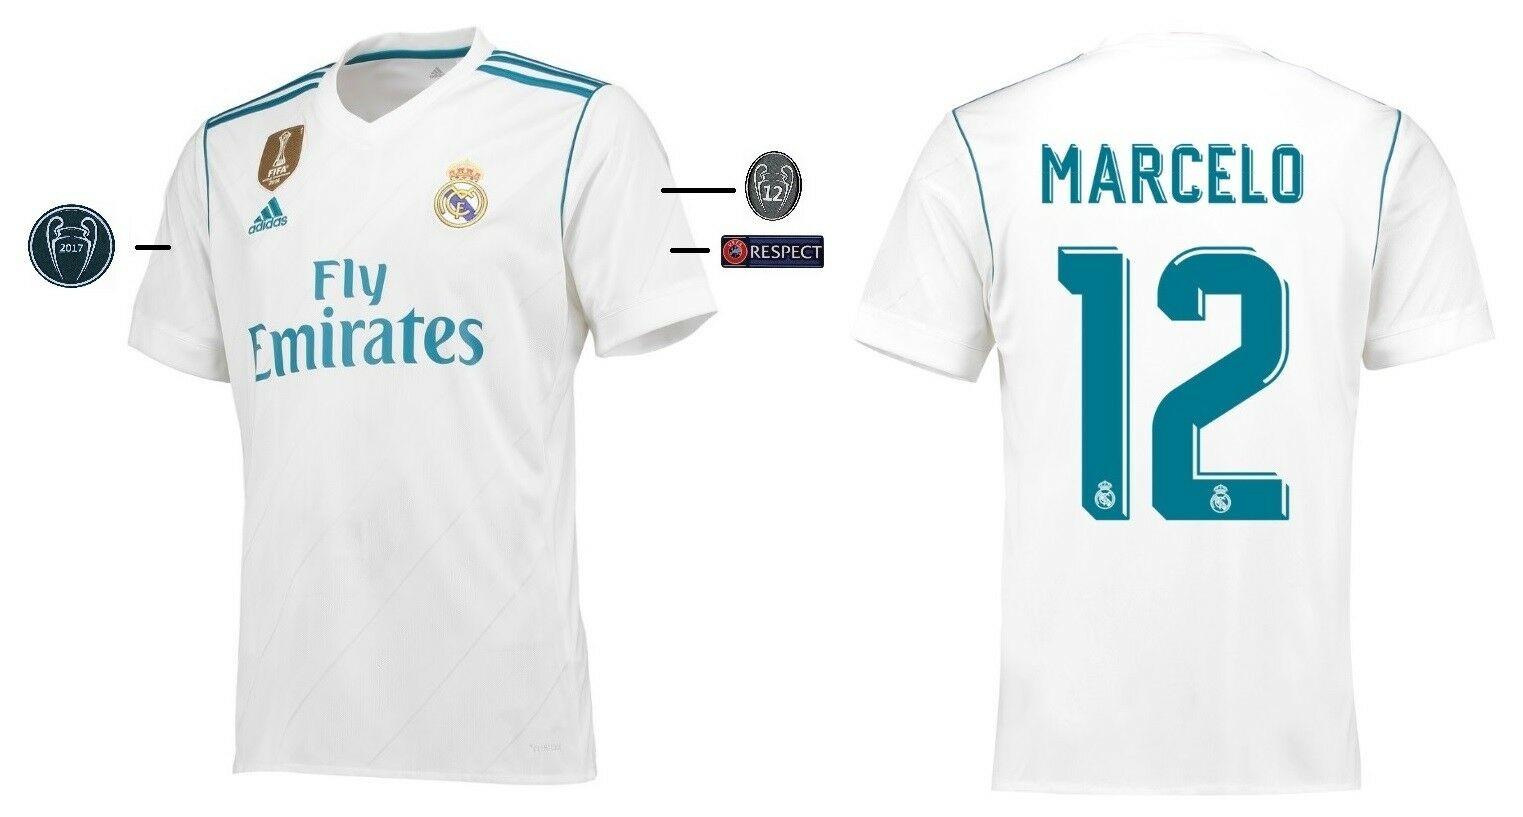 Trikot Adidas Real Madrid 2017-2018 Home UCL - Marcelo 12 [152-XXL]